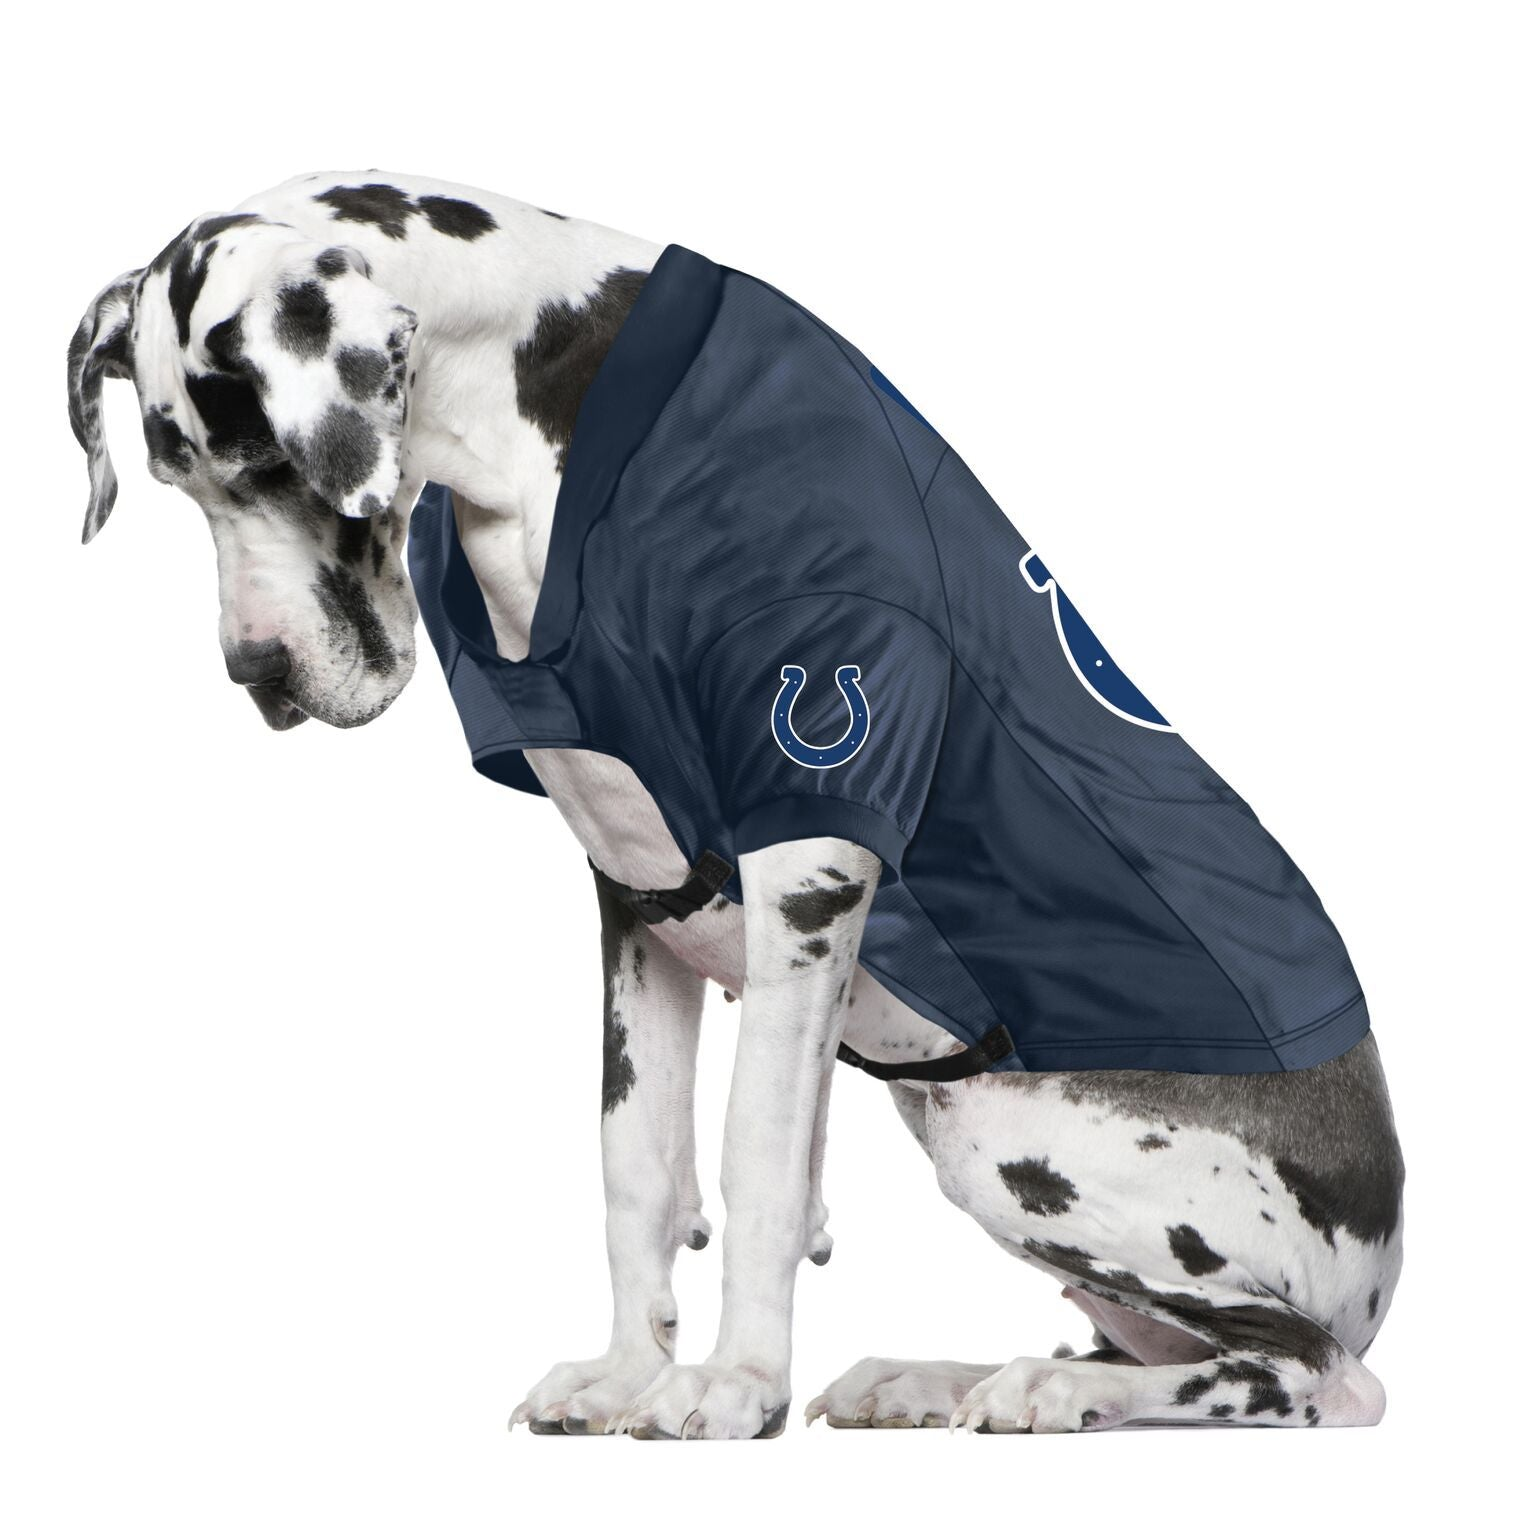 Colts Fan Jersey For Your Dog